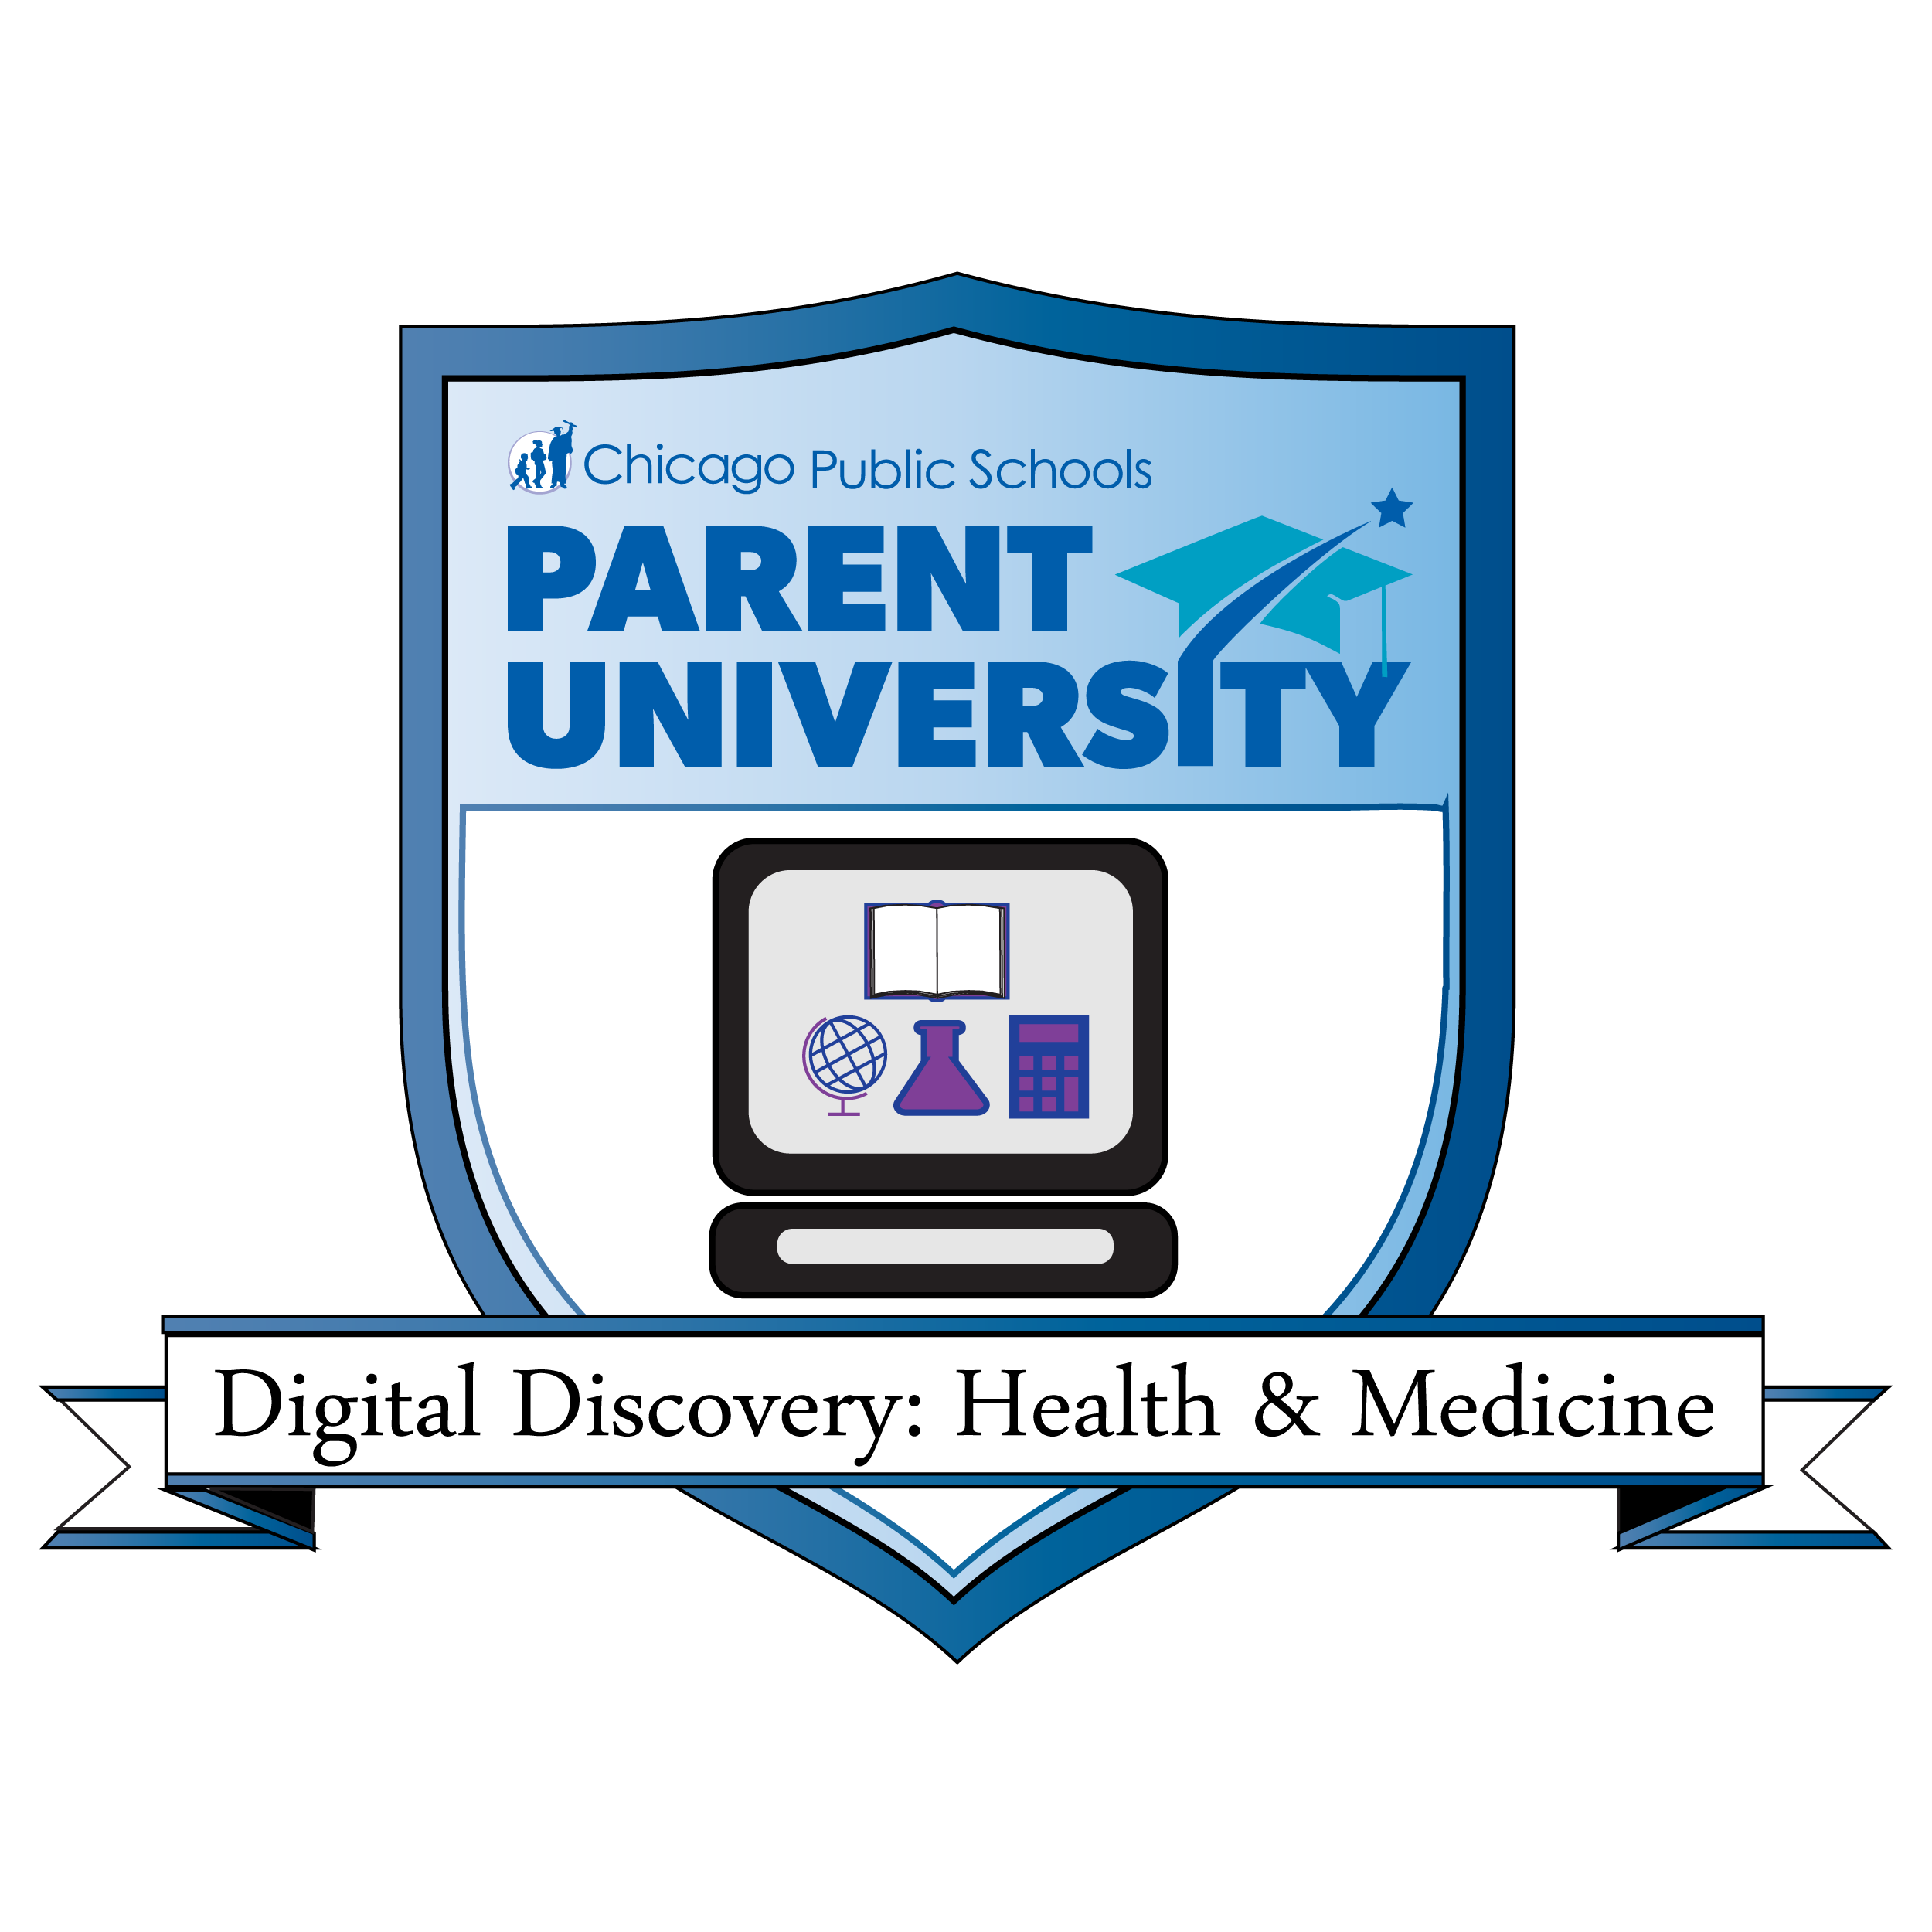 Digital Discovery - Health and Medicine